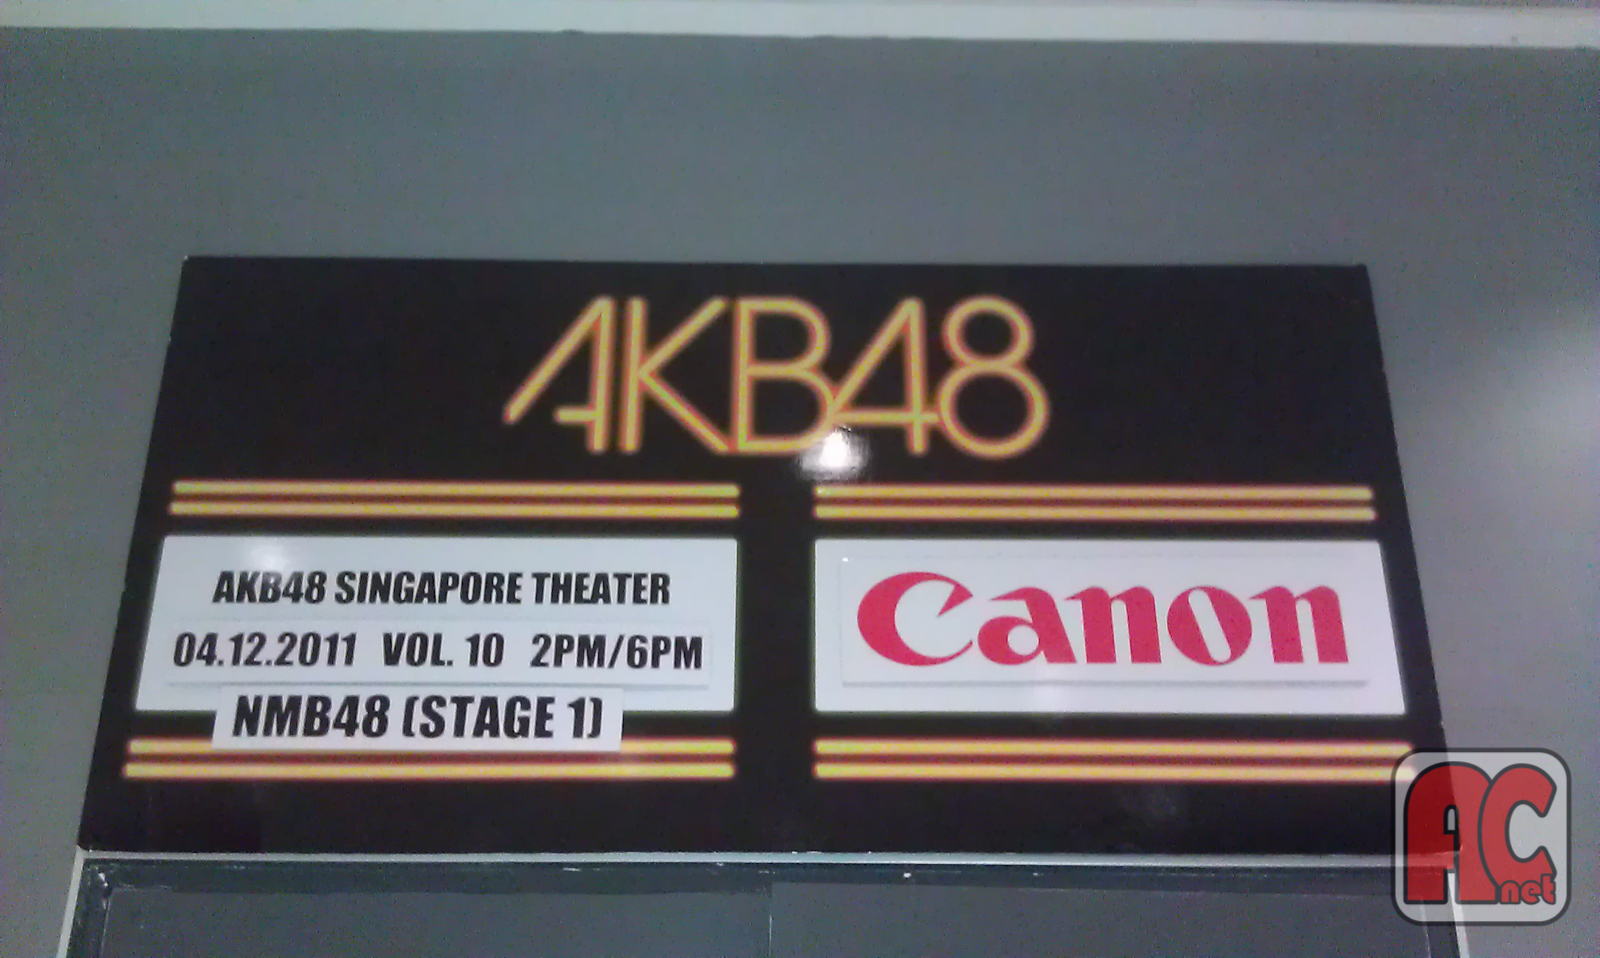 Reflection: AKB48 Singapore 2011